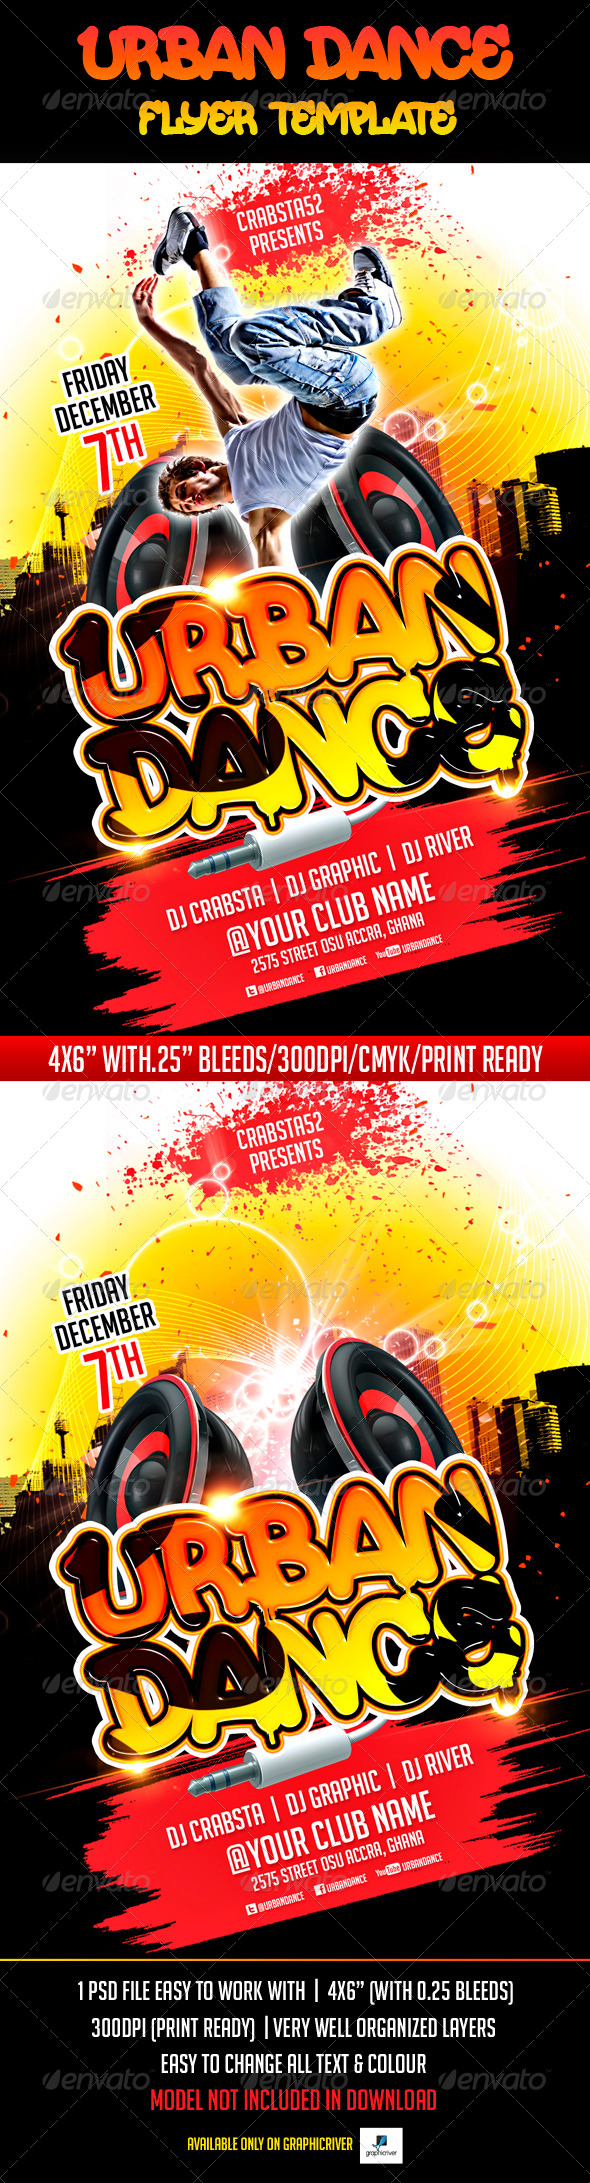 GraphicRiver Urban Dance Flyer Template 5896470